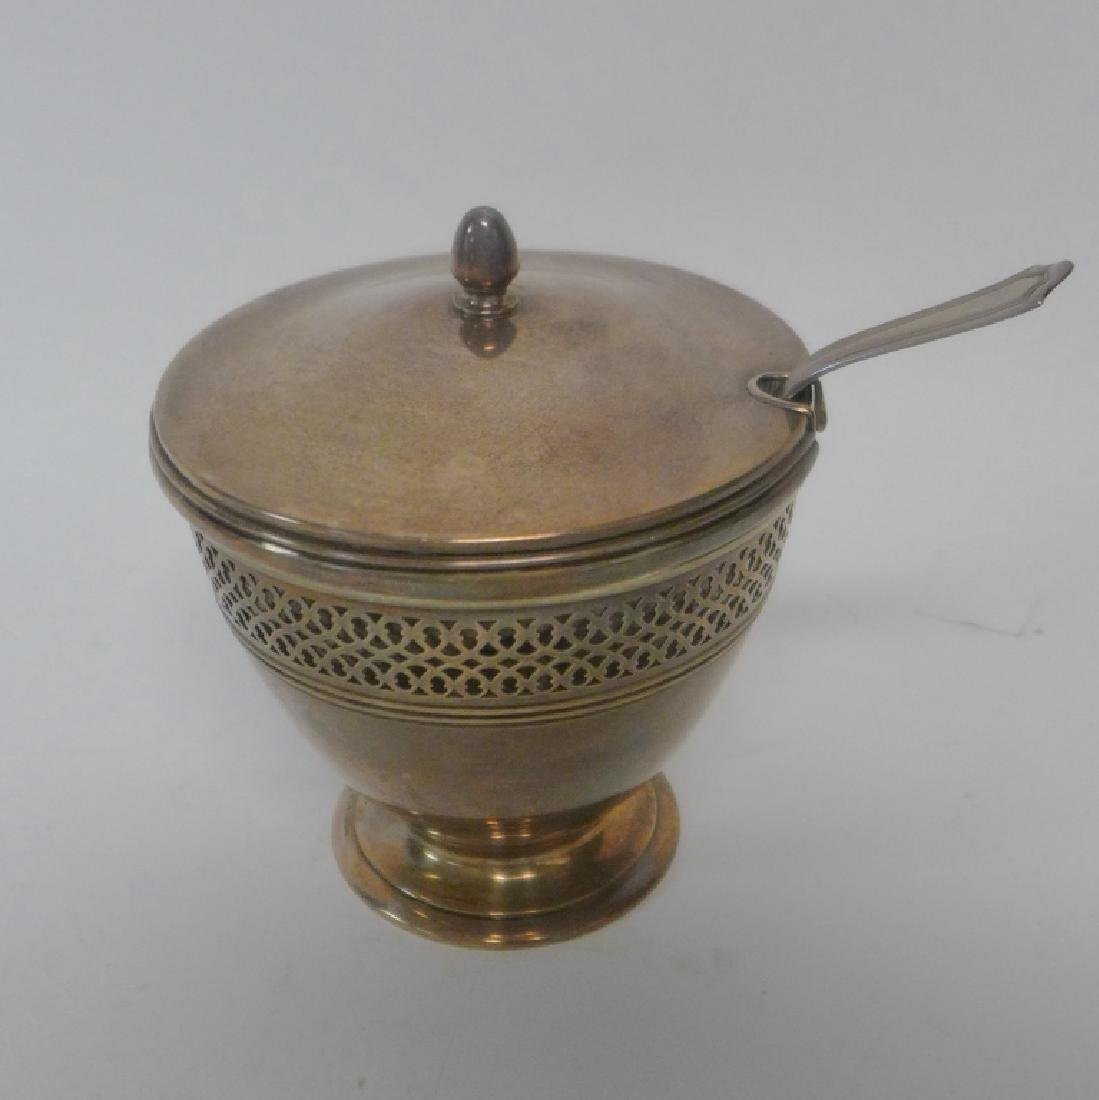 Tiffany & Co Sterling Silver Covered Sugar Bowl - 10